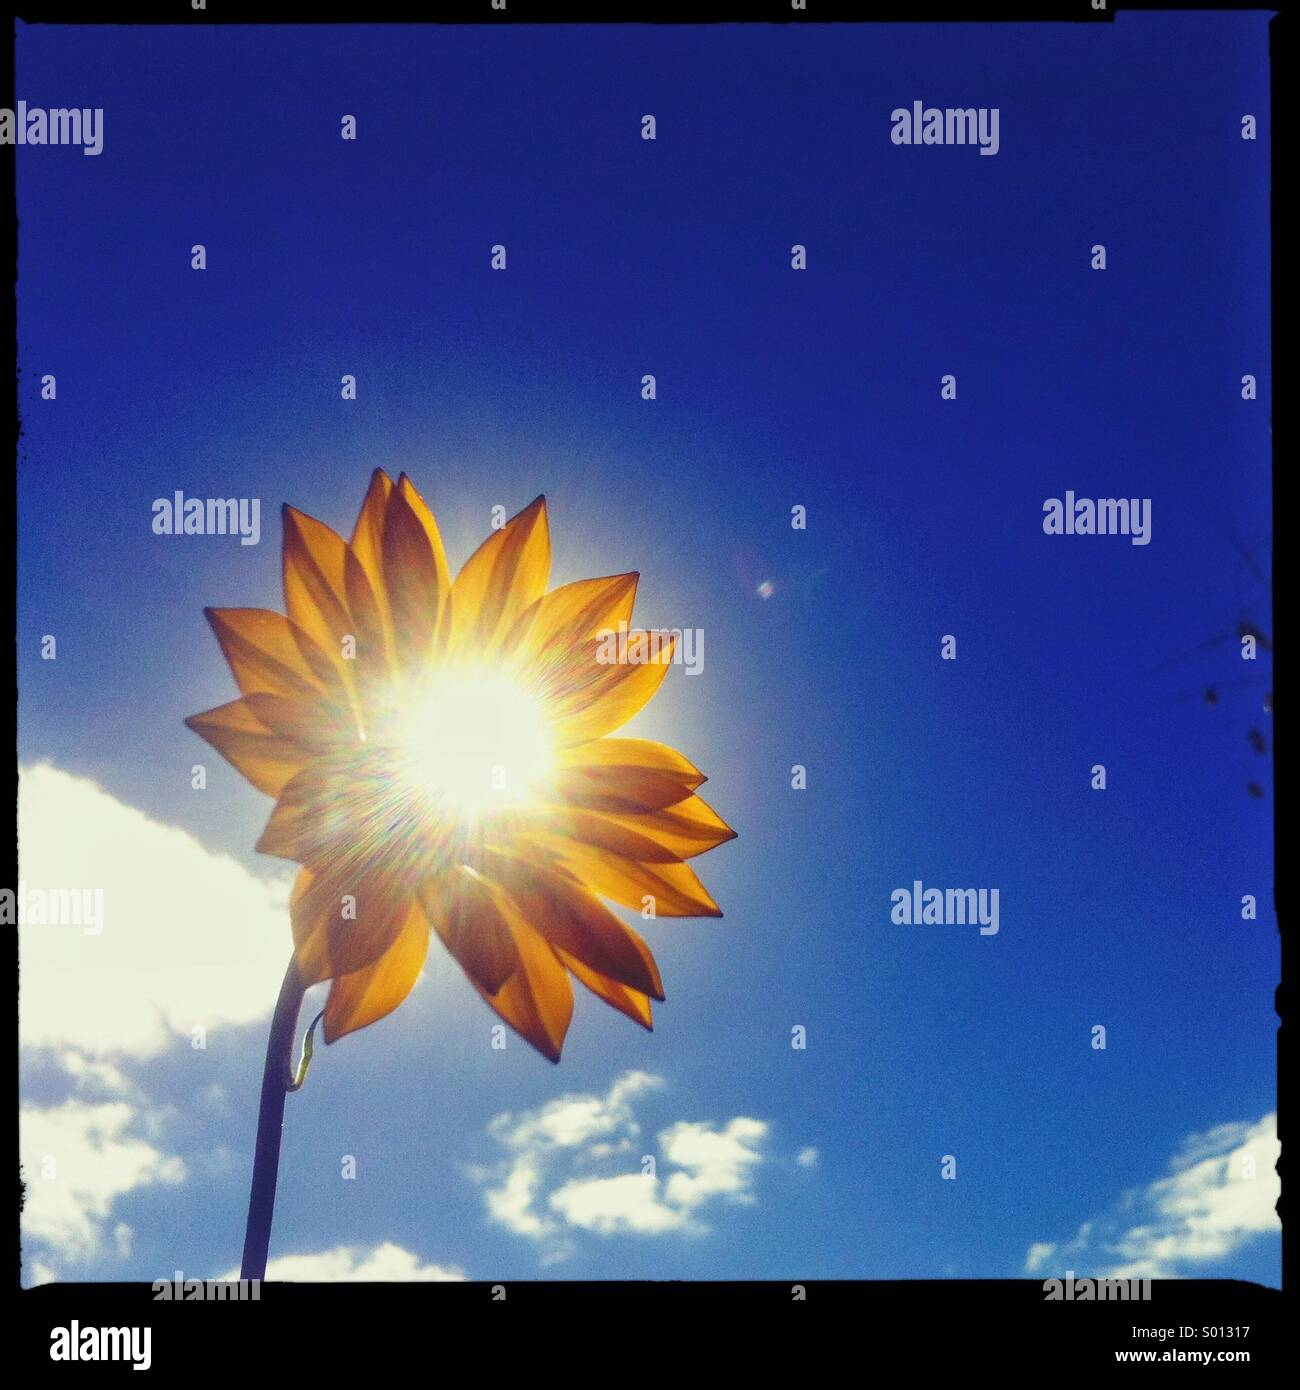 Sun shining through a flower - Stock Image